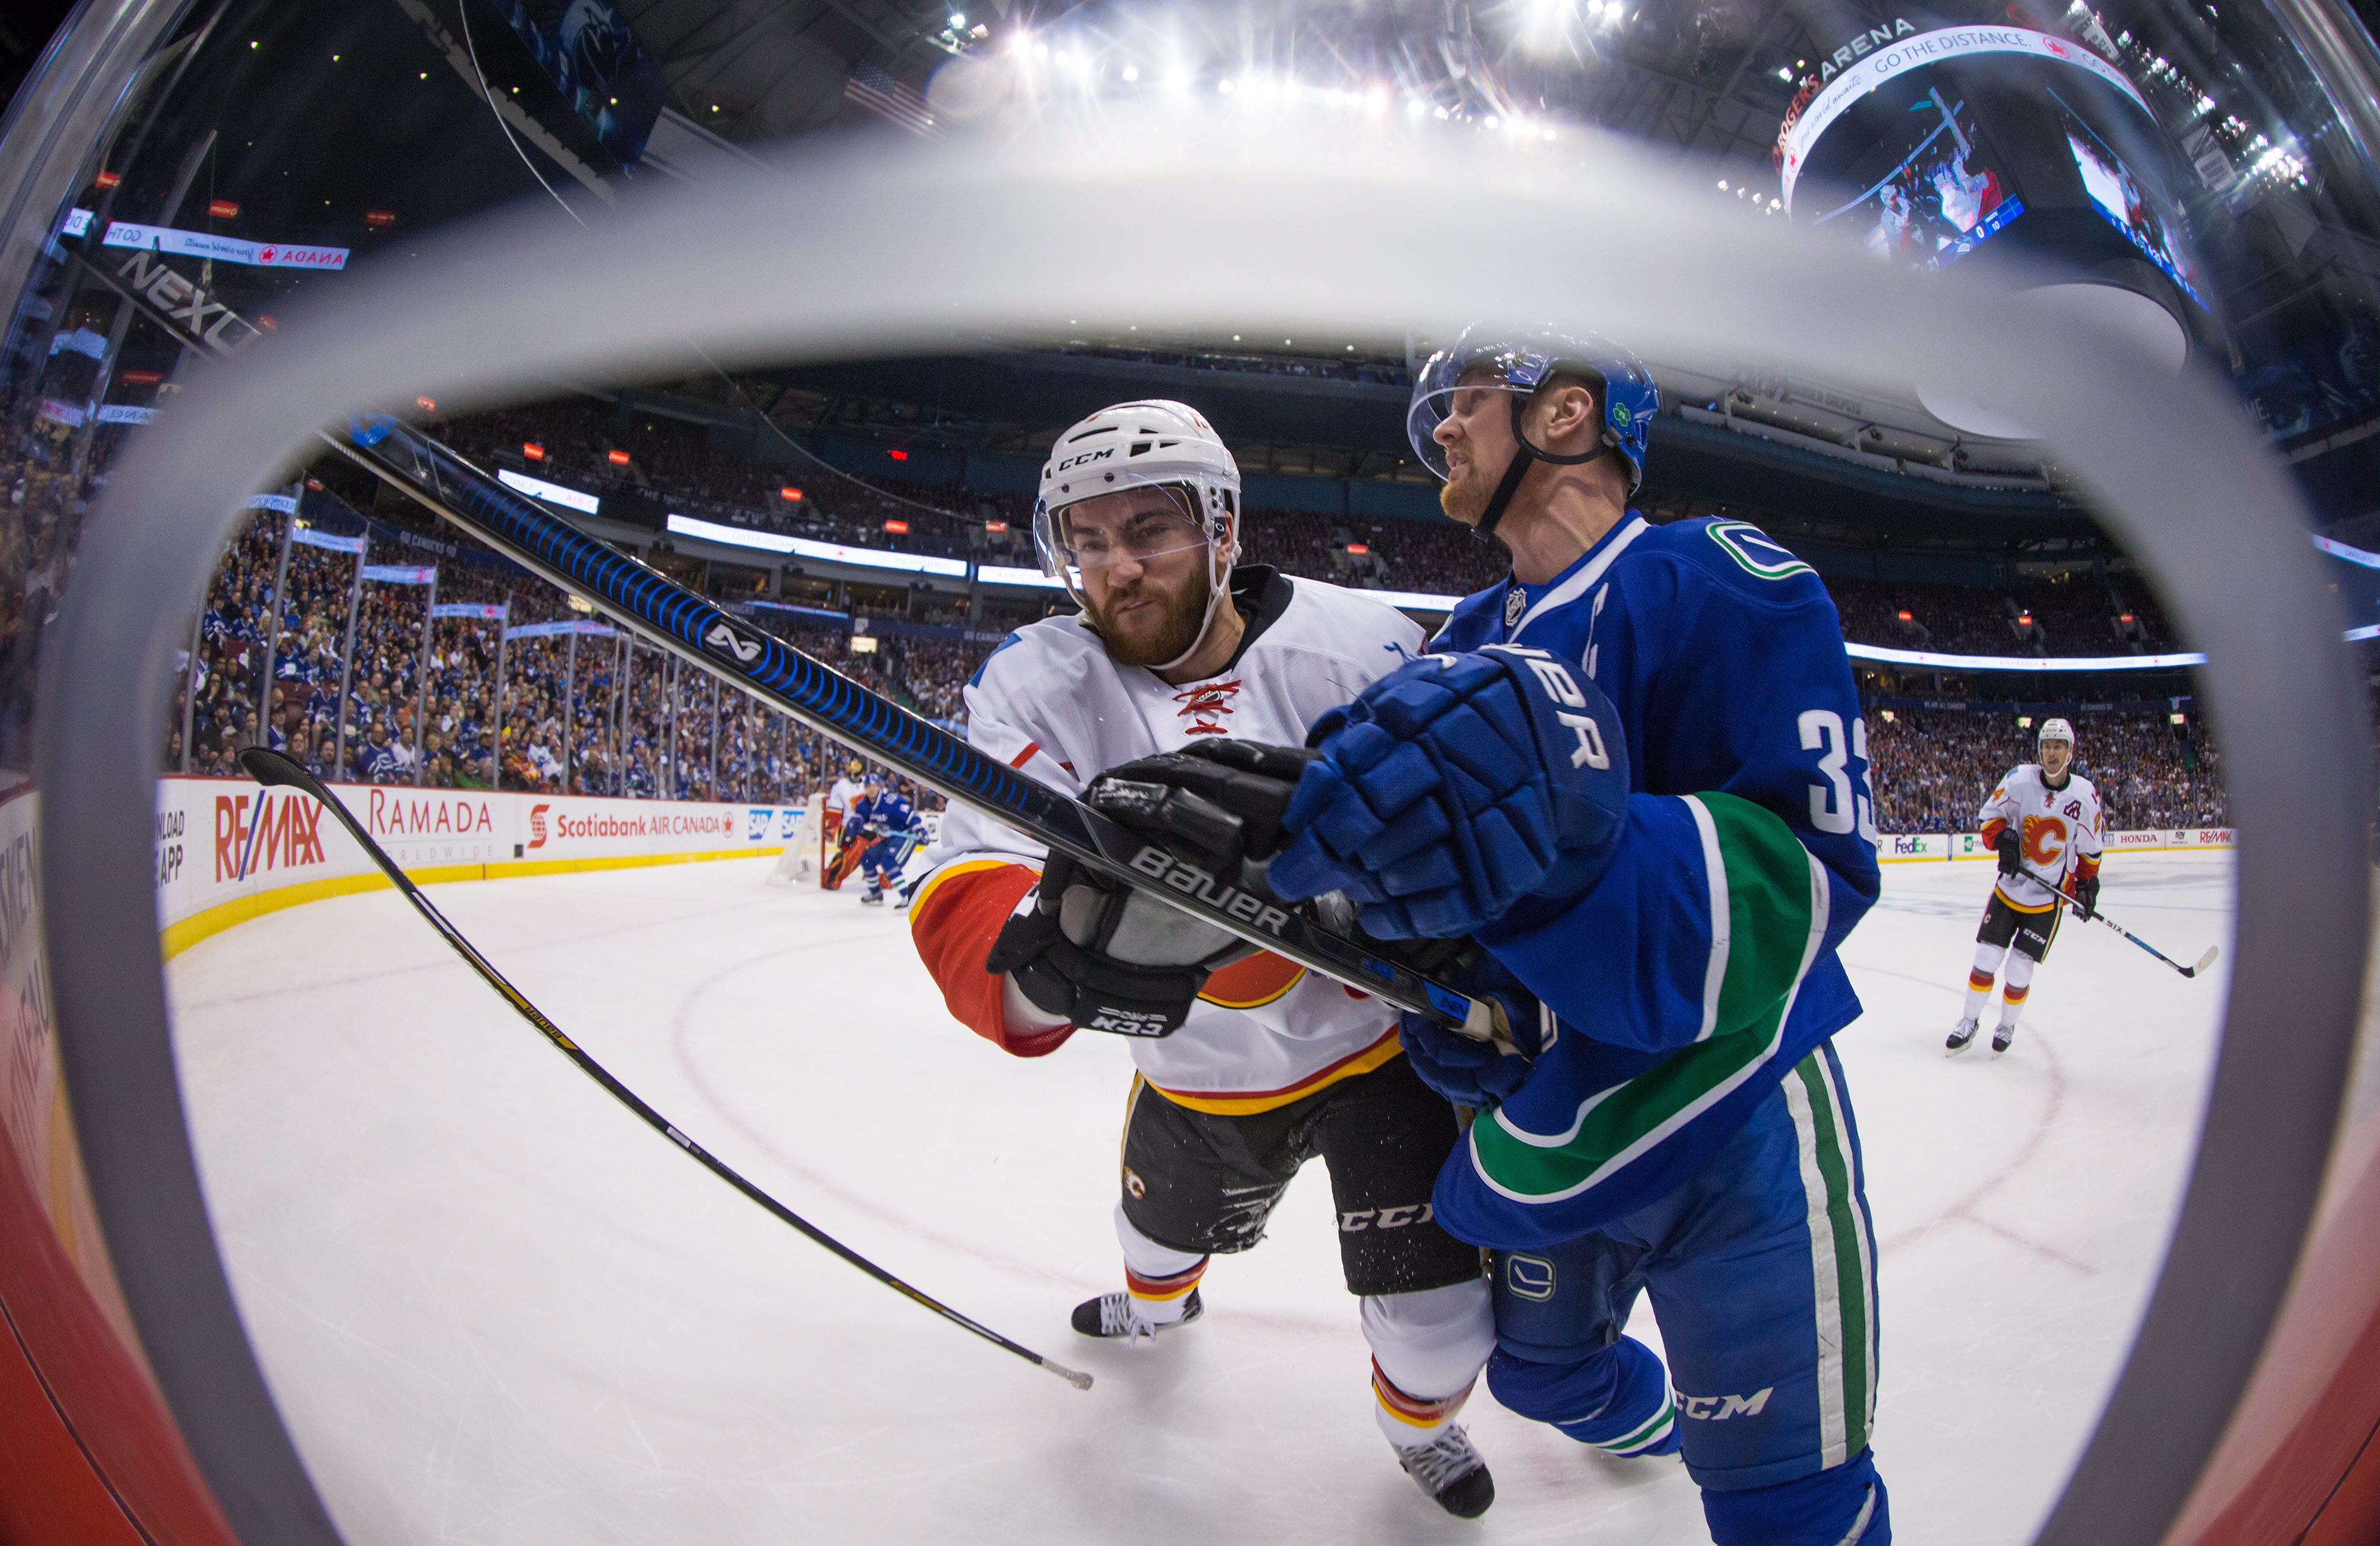 Calgary Flames' T.J. Brodie, back, loses his stick as he checks Vancouver Canucks' Henrik Sedin, of Sweden, during the first period of Game 1 of an NHL hockey first-round playoff series, Wednesday, April 15, 2015, in Vancouver, British Columbia. (Darryl D